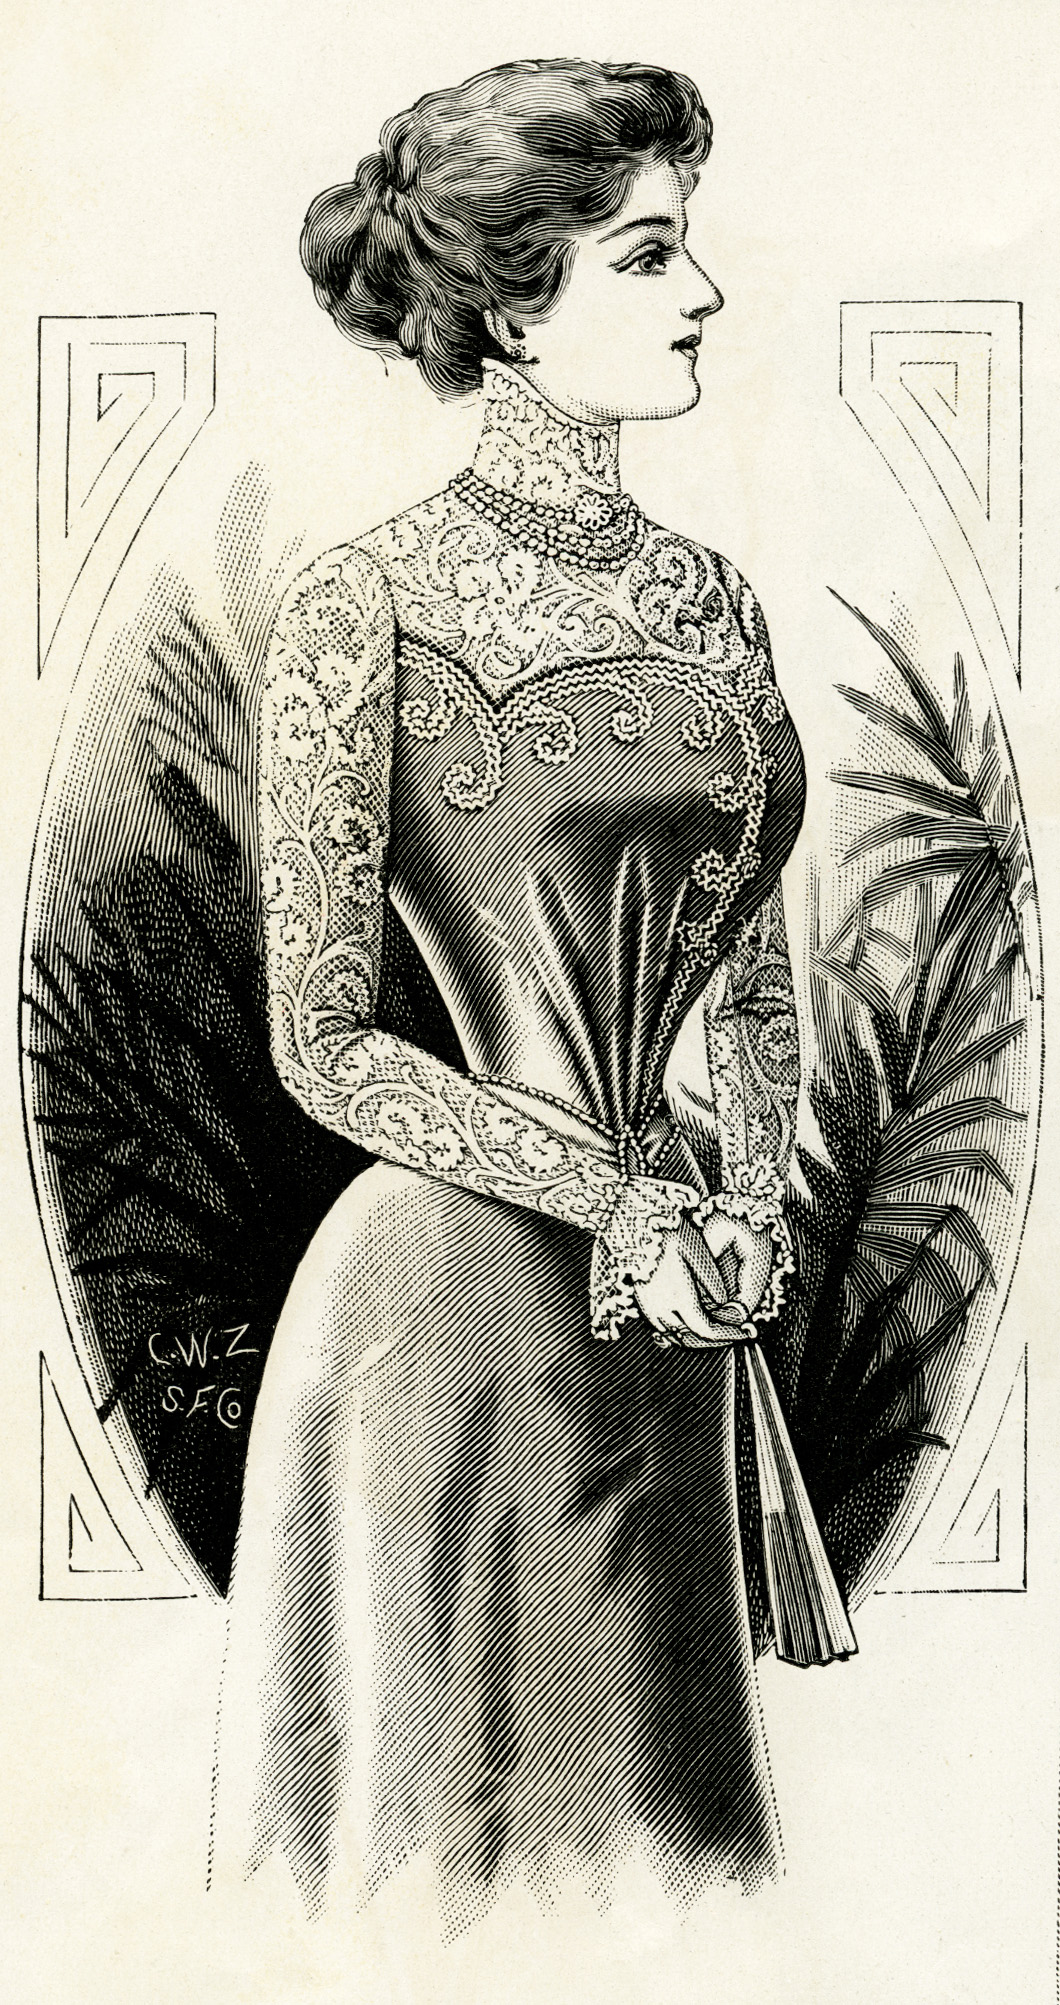 victorian lady, 1899 fashion, stylish victorian woman, free printable, old magazine sketch of lady, pretty vintage girl, public domain digital image, graphic design resource, antique designer illustration